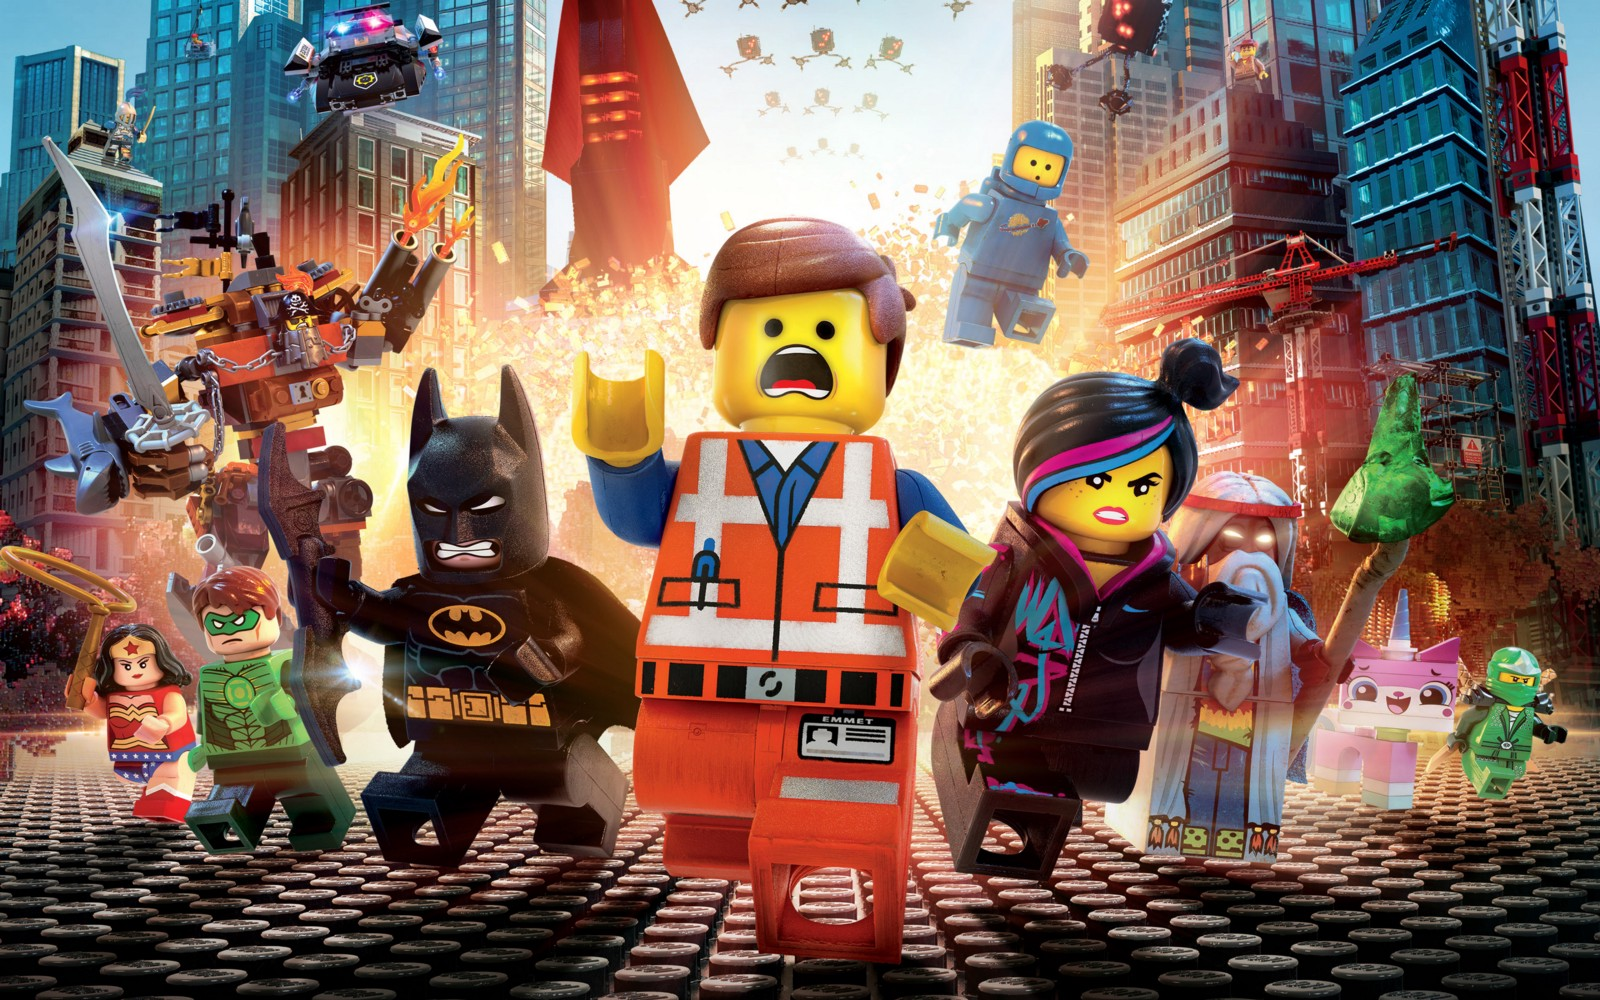 Watch The LEGO Movie on YouTube for free this Friday screenshot